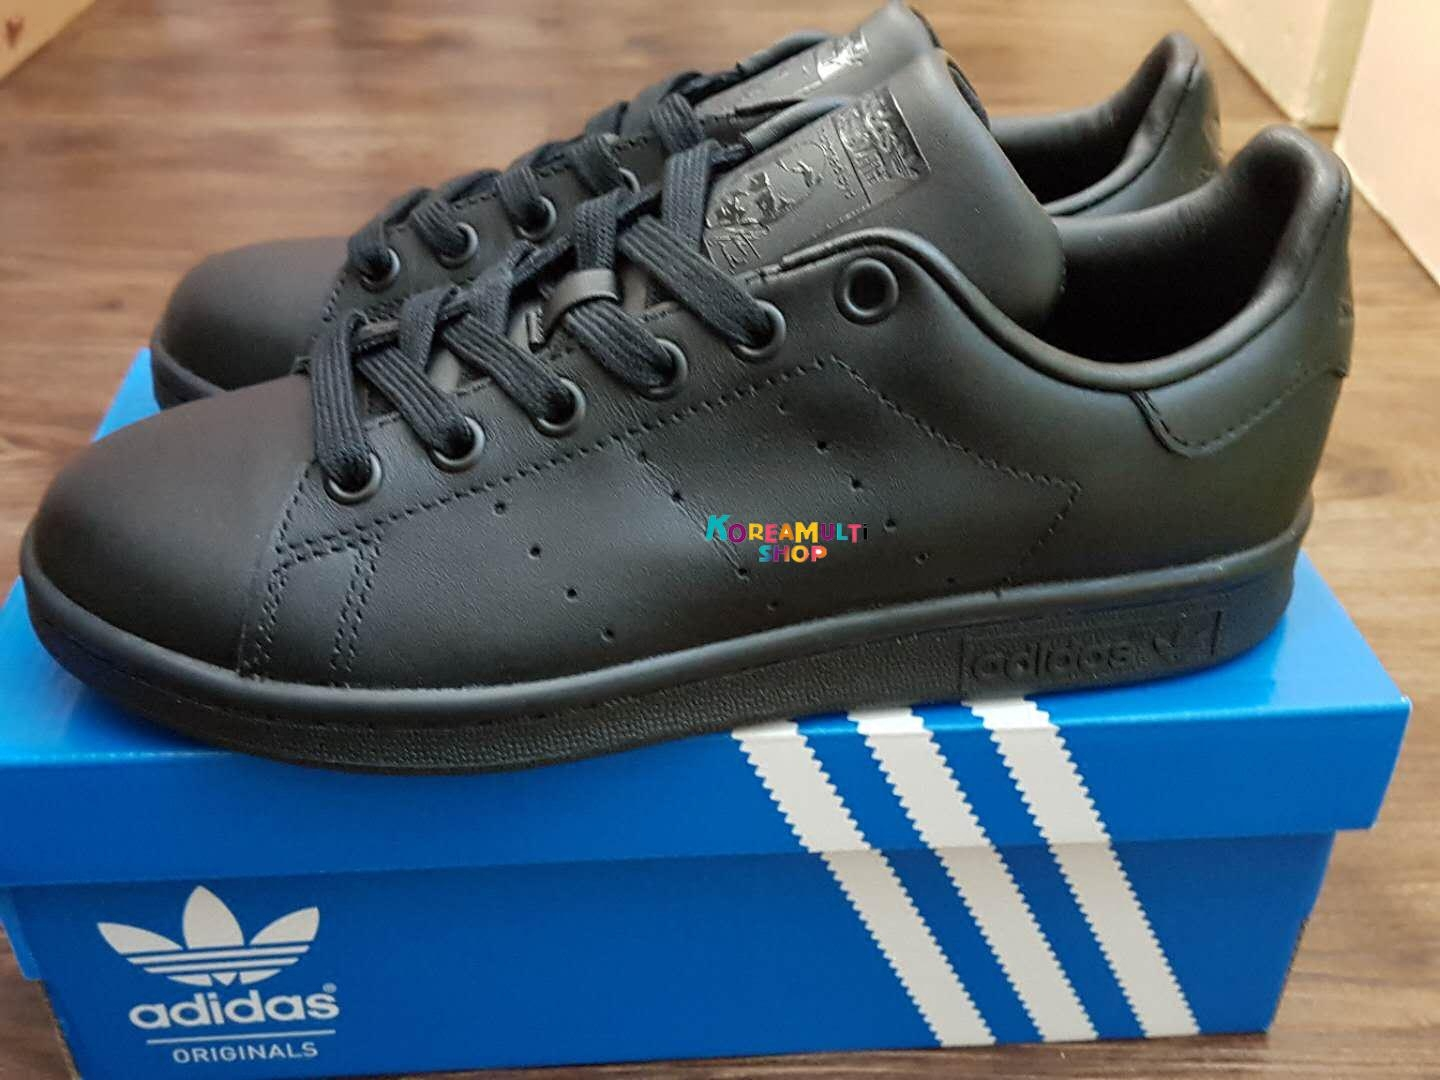 Overseas direct mail June ADIDAS clover STANSMITH male and female M20327